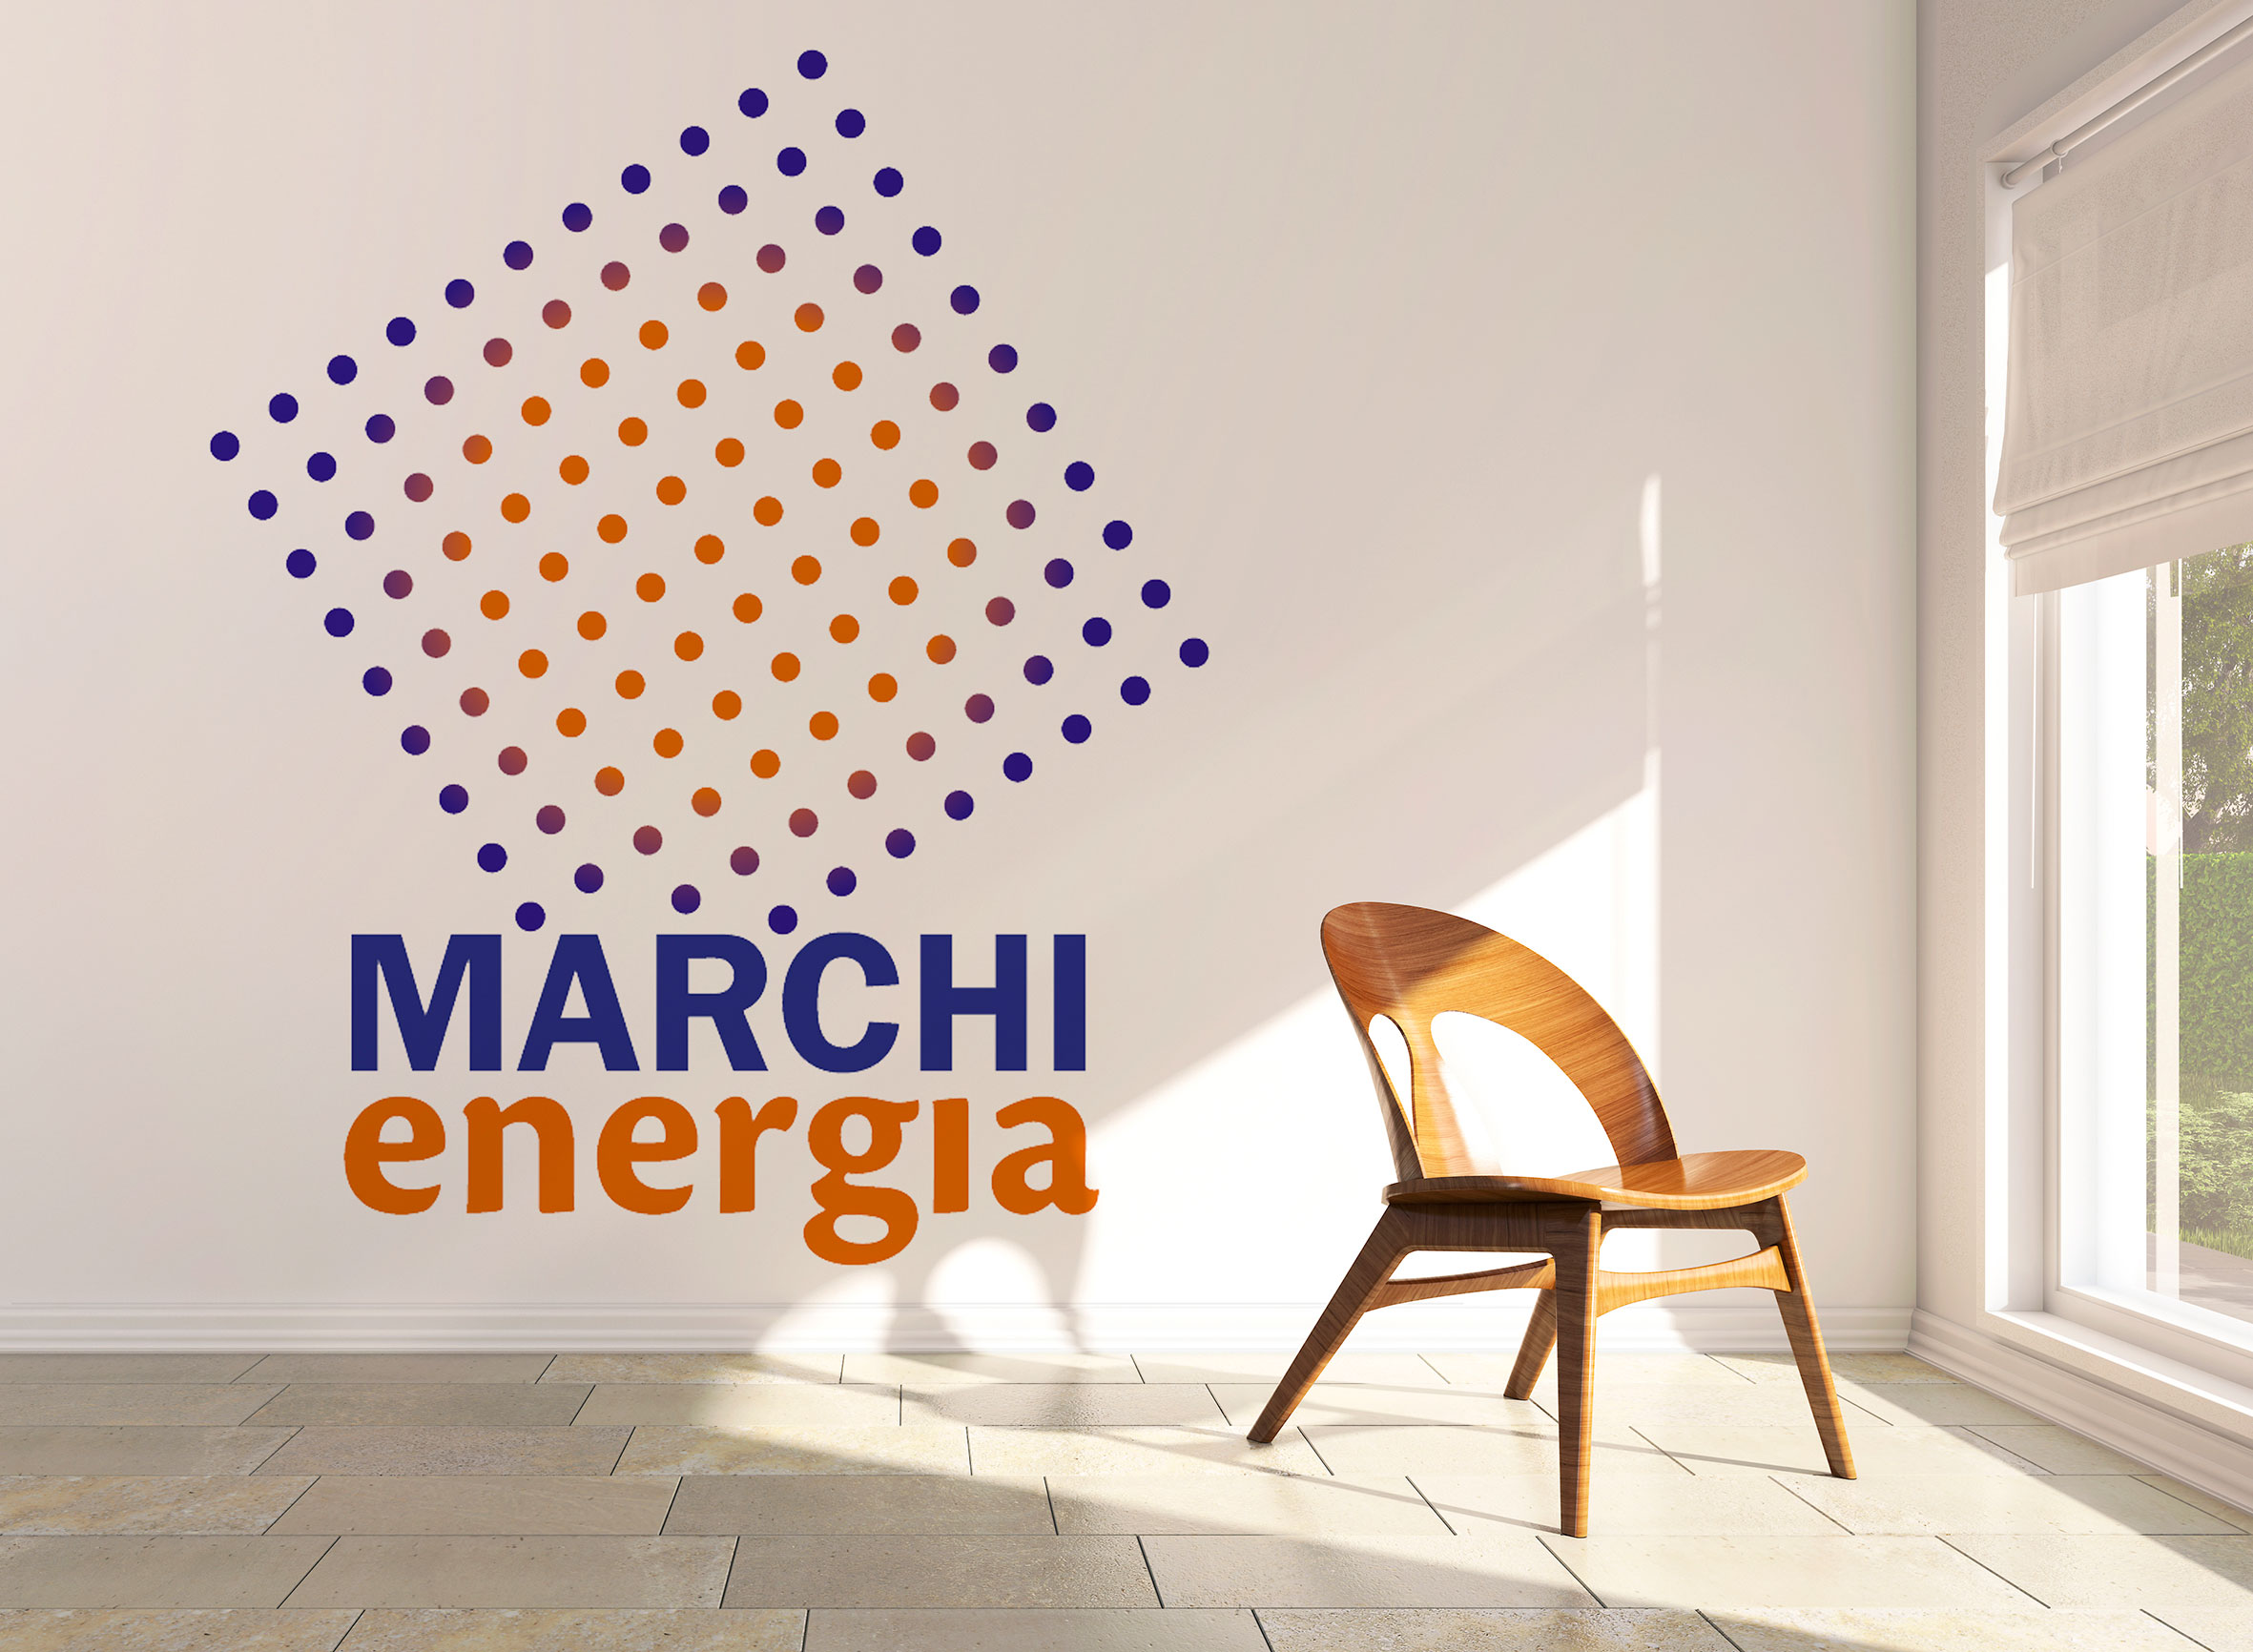 SC-Studio-Chiesa-Communication_Energia-Ambiente-Marchi-Energia-logo